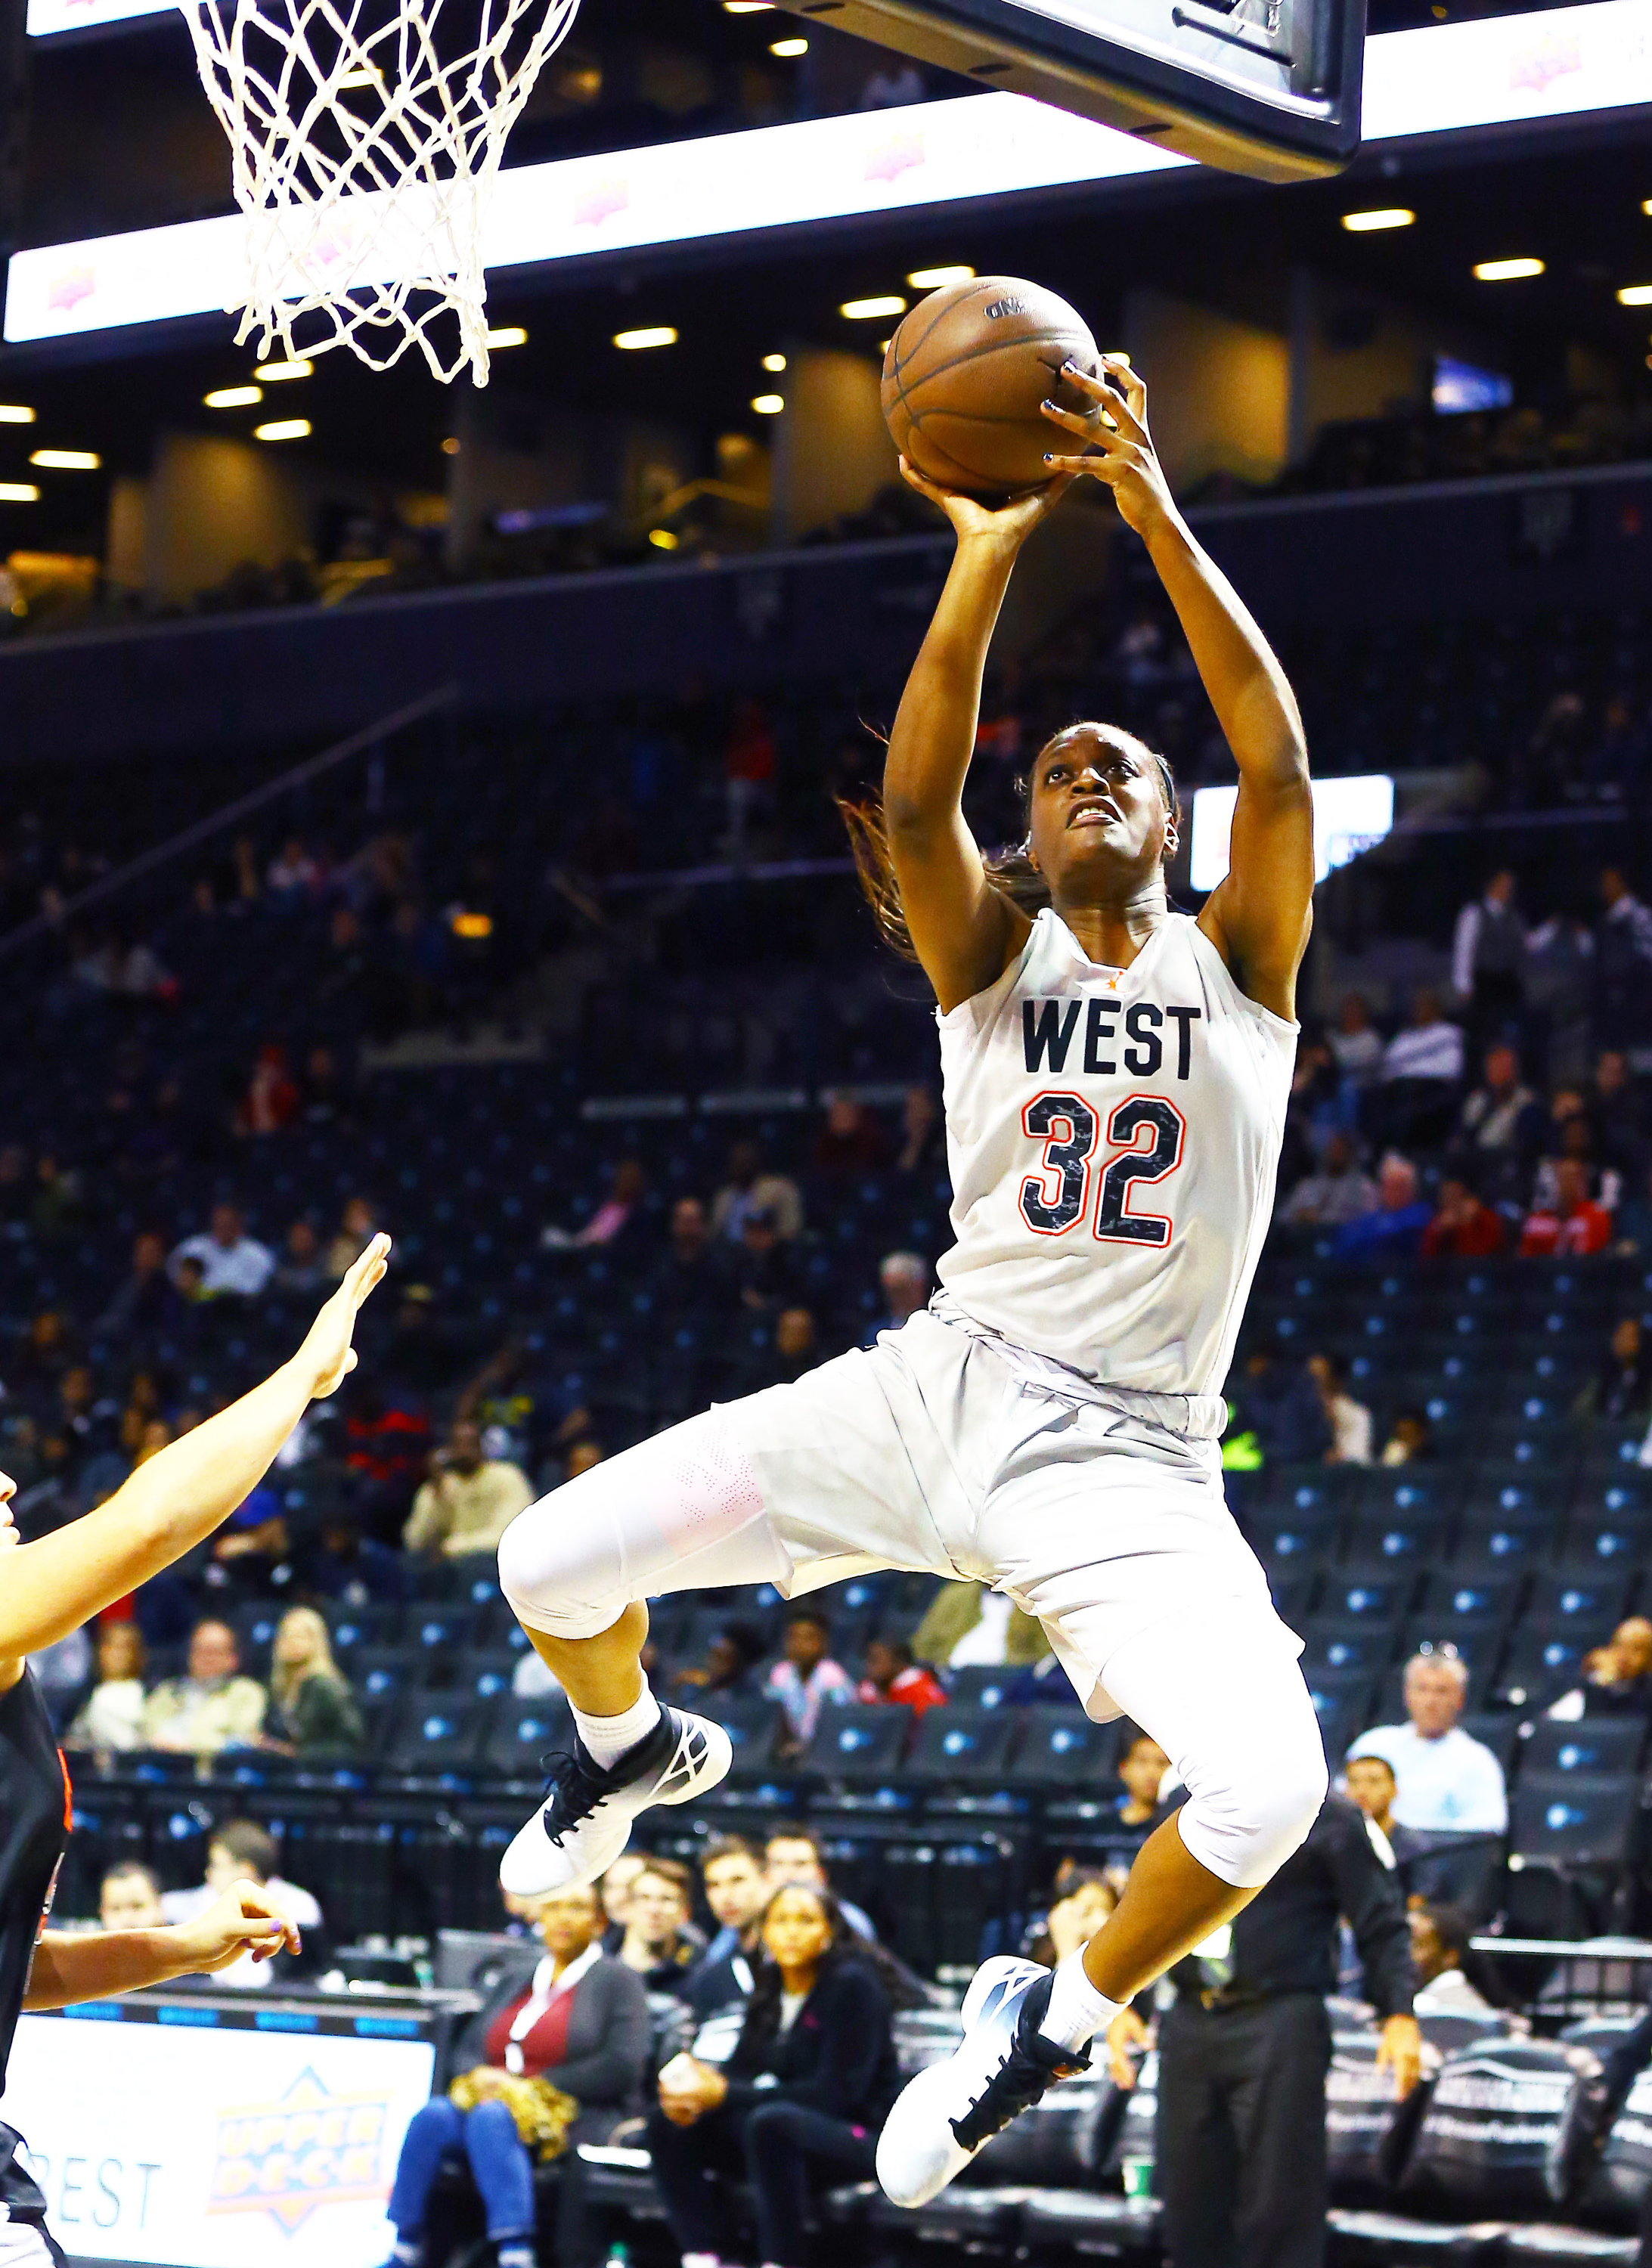 4/15/2016 3:30PM -- New York, NY, U.S.A  -- West Team forward Joyner Holmes (32) takes a shot against the East Team during the second half of the Jordan Brand Classic Girls National Game at Barclay's Center.The West defeated the East 100-94. Photo by Andy Marlin-USA TODAY Sports Images, Gannett ORG XMIT:  US 134691 Jordan hoops 4/15/2016 [Via MerlinFTP Drop]